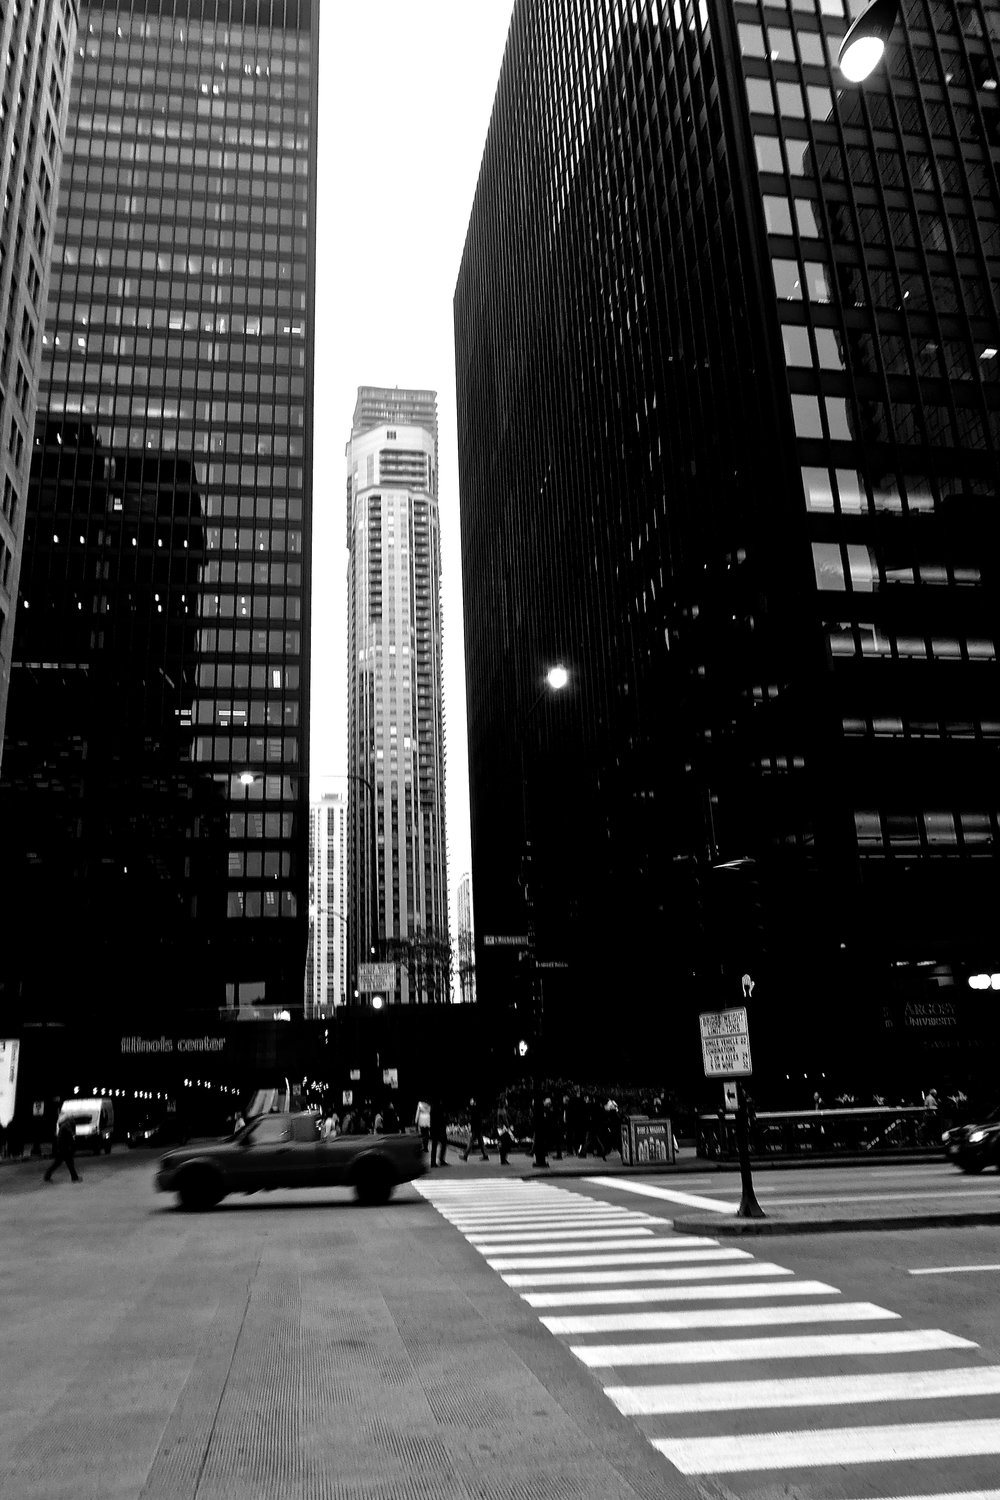 David_Vogel_CHICAGO STREET CORNER.jpg